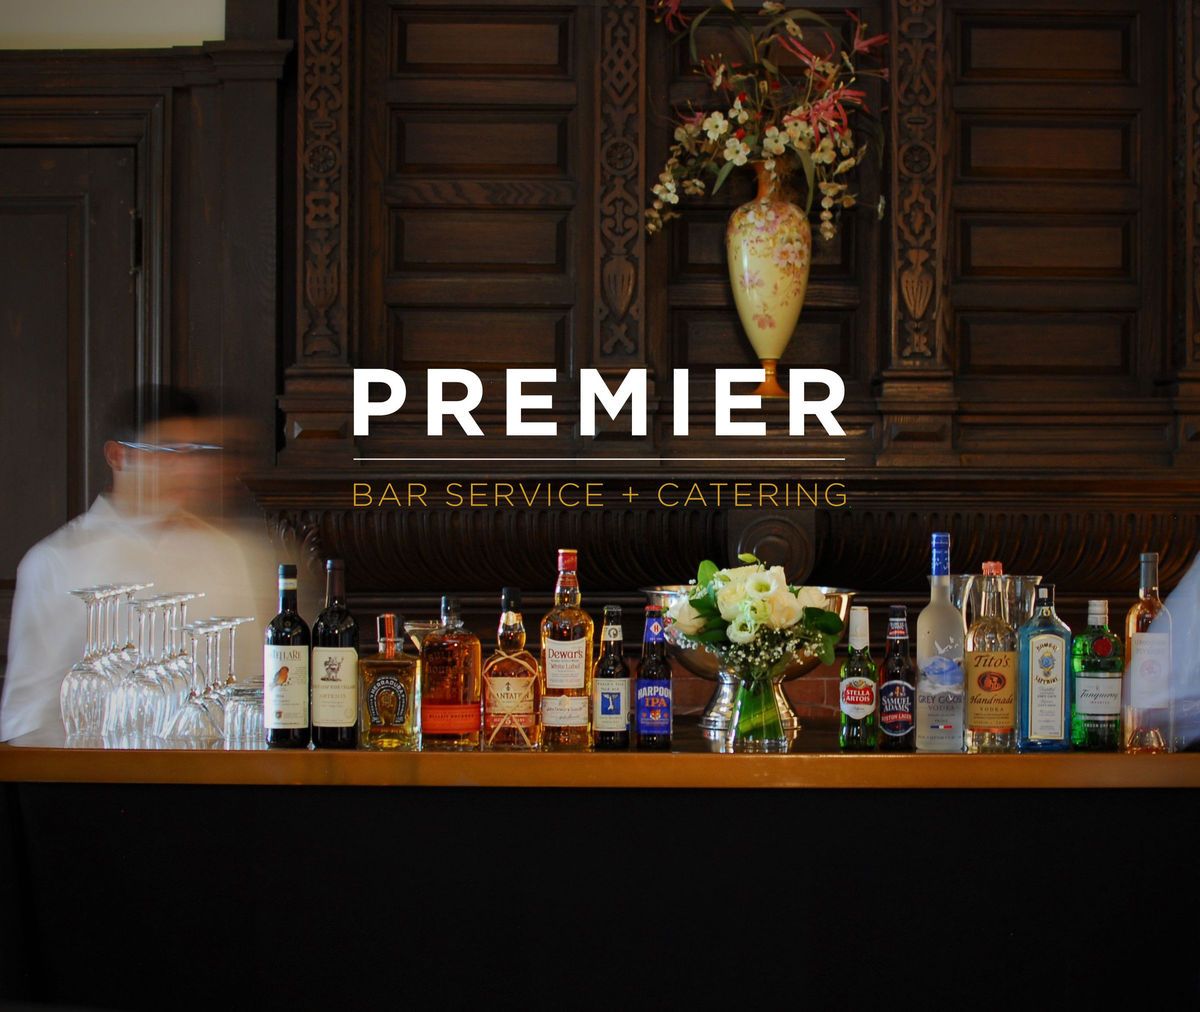 Premier Bar Service Catering Wedding Catering